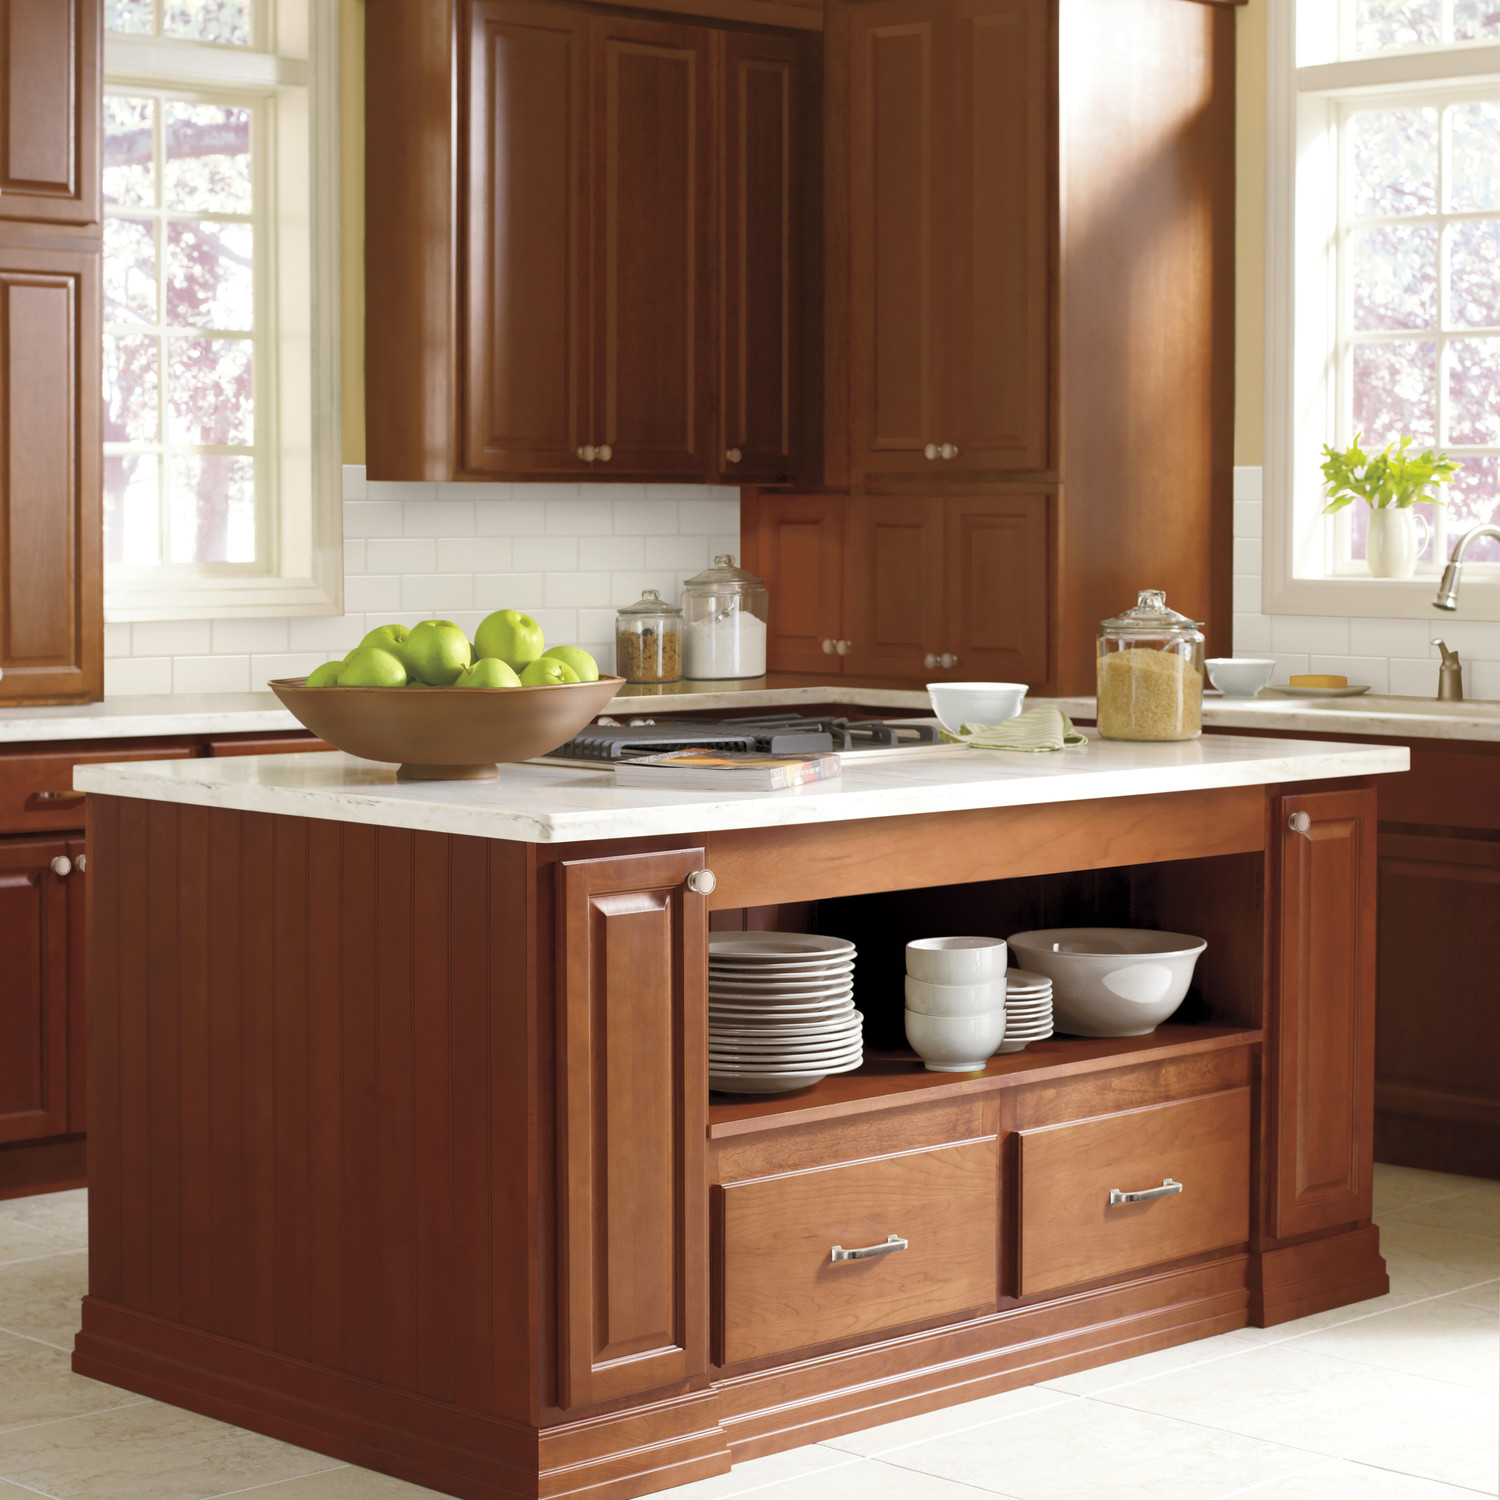 Ordinary Martha Stewart Kitchen Appliances #5: Choosing Kitchen Cabinets: 14 Things You Need To Know